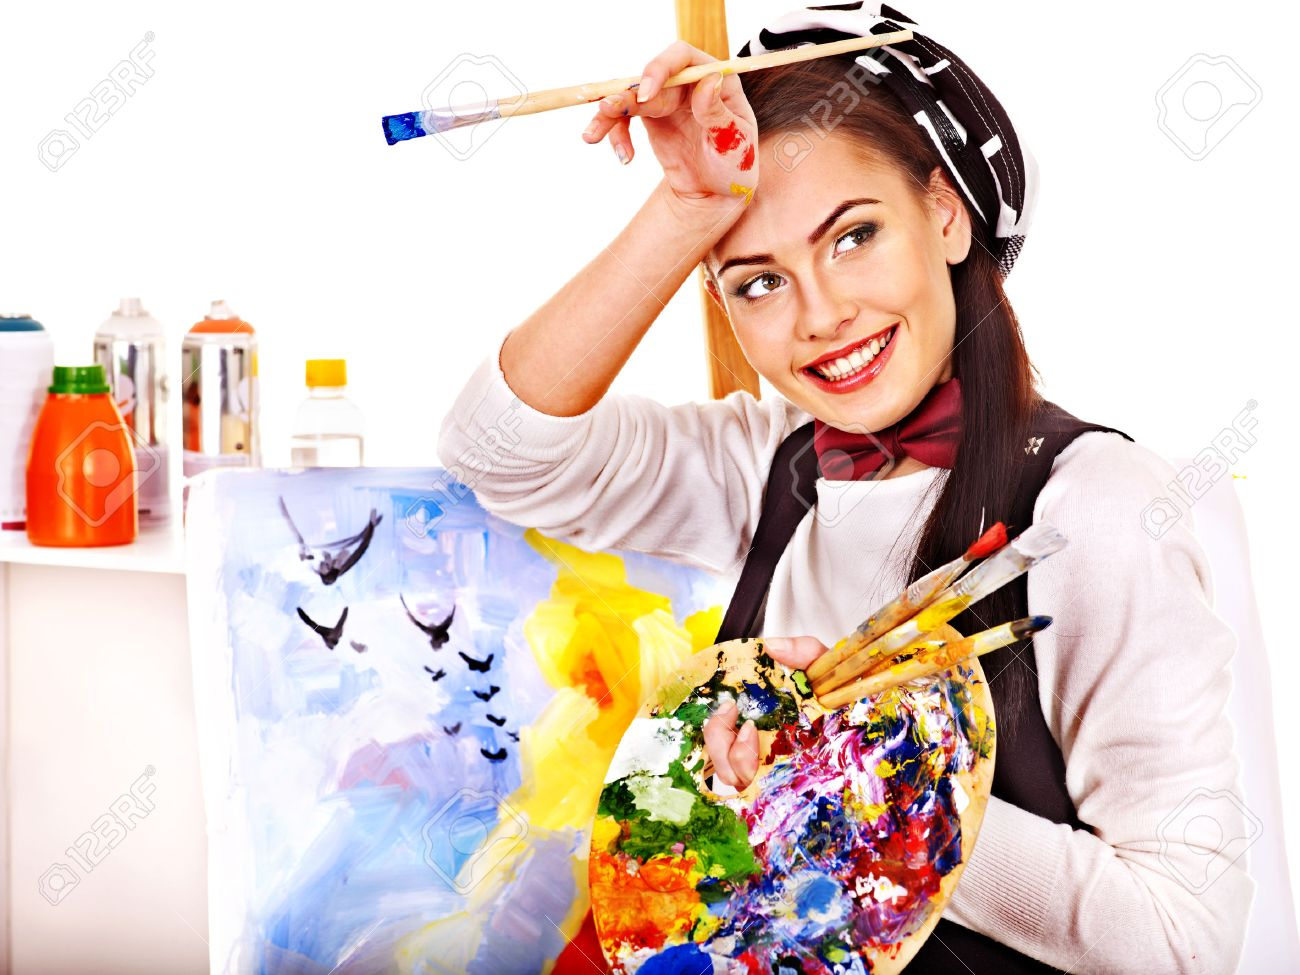 Artist woman at work. Isolated. - 22657381